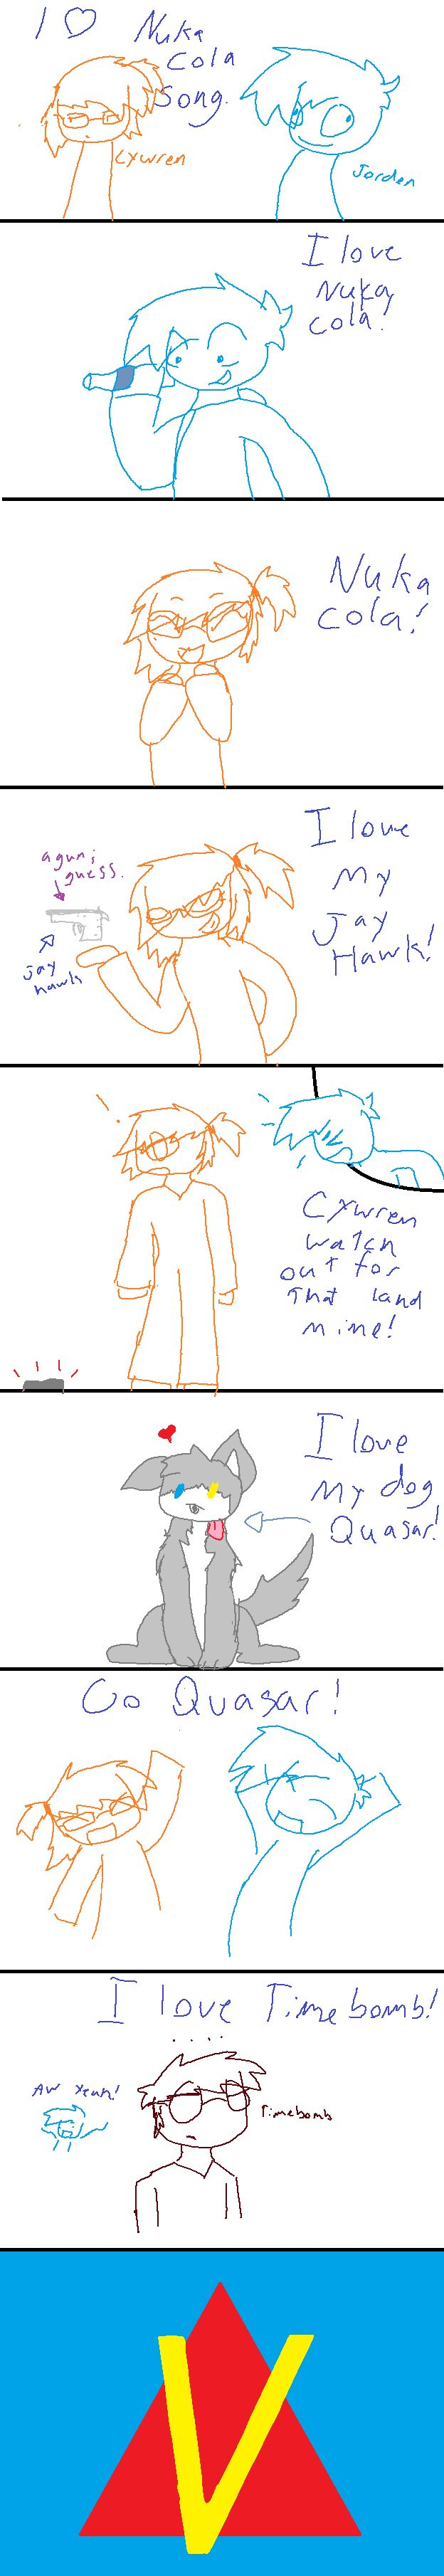 My drawing skills for humans and guns are bad.  But nevermind that,  here is a parody of I love coca cola song.  I used Venturiantale's characters in this.  So all rights go to him and stuff.